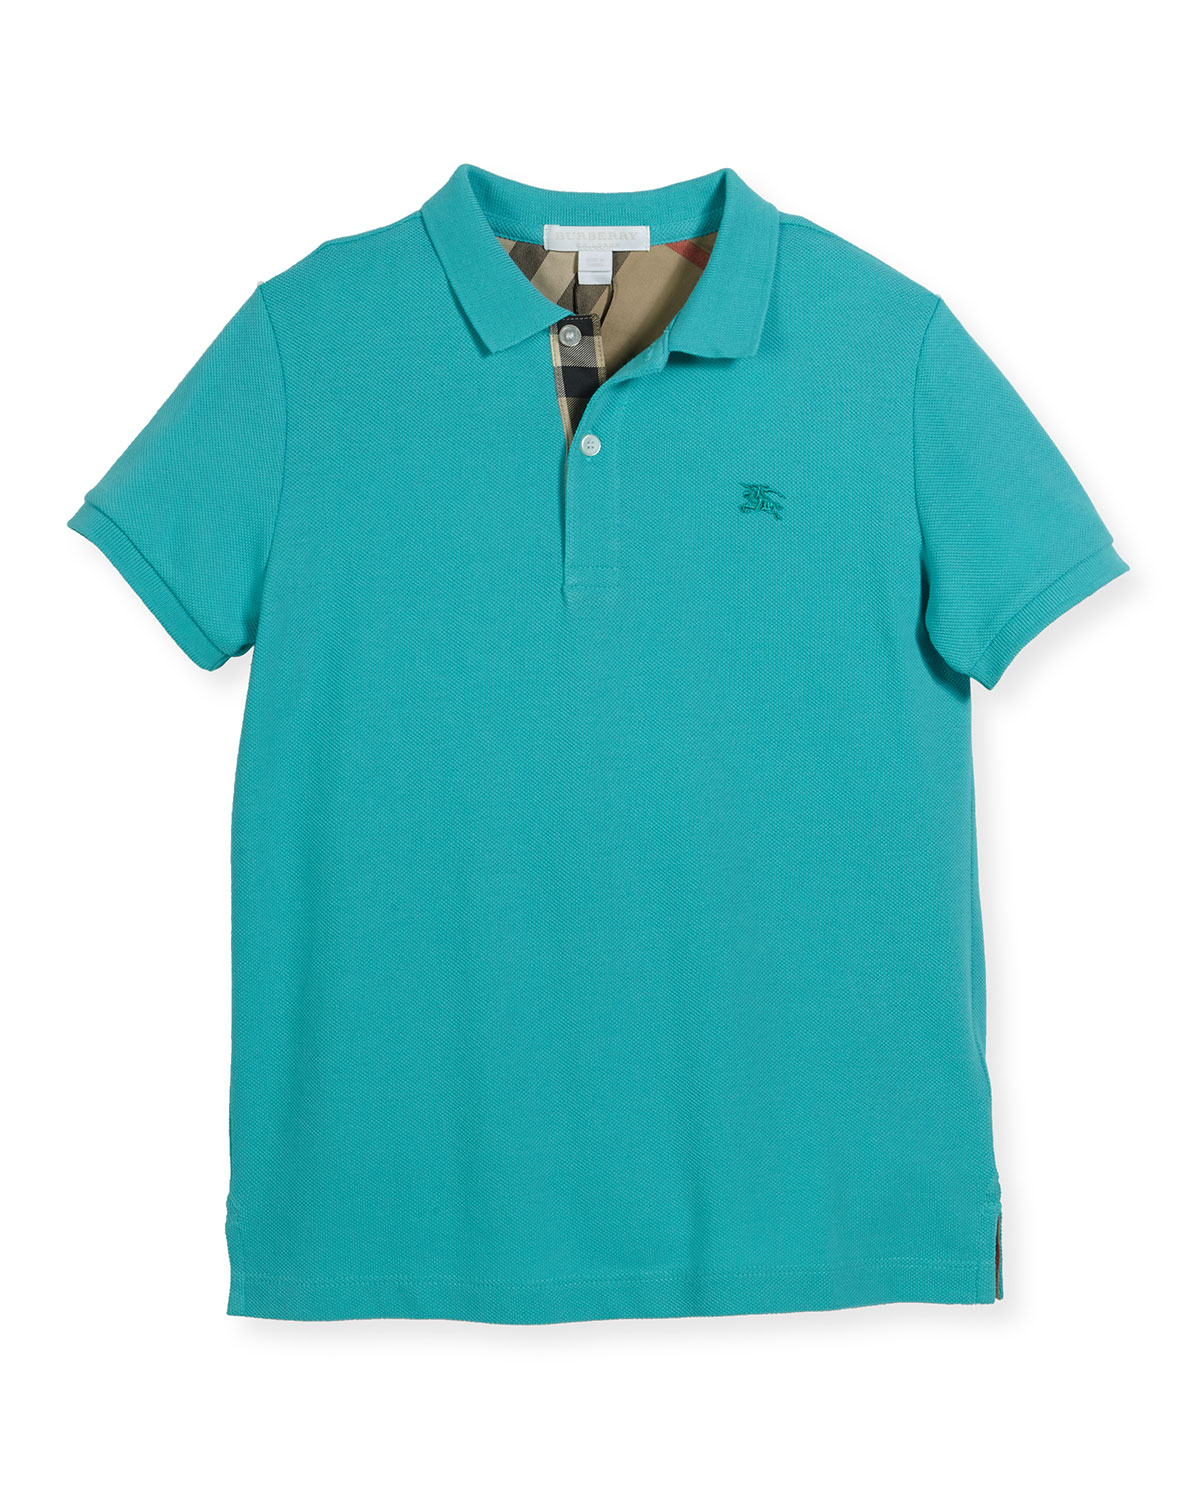 Palmer Short-Sleeve Pique Cotton Polo Shirt, Turquoise, Size 6M-3